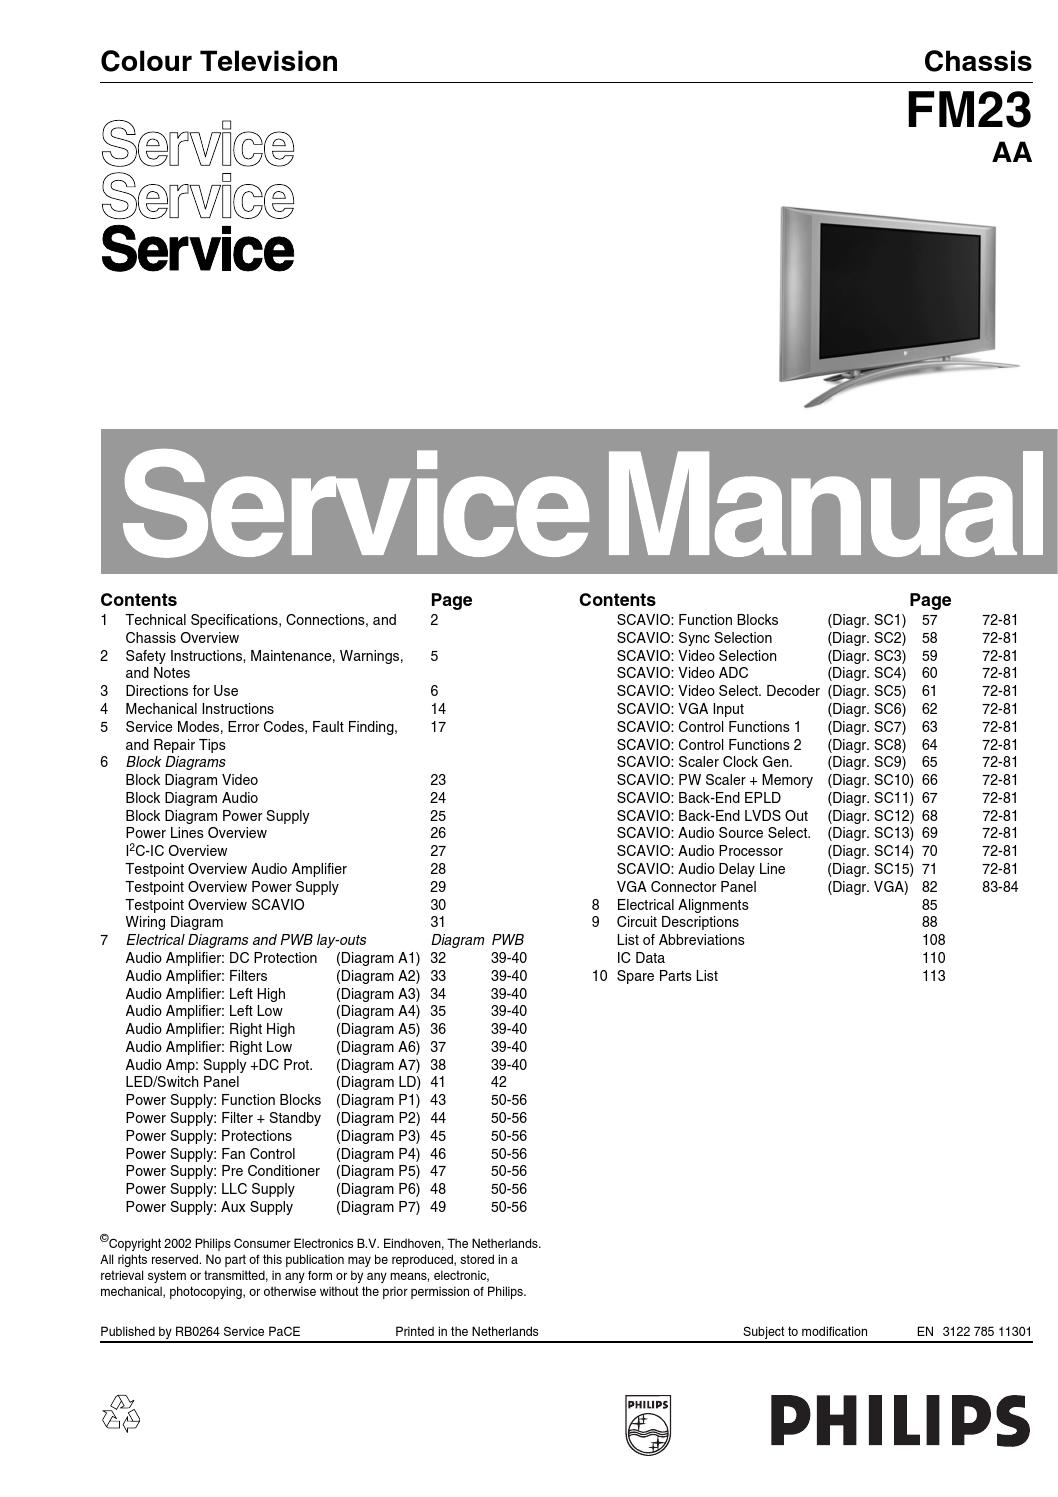 page_1 manual de servi�o televisores philips chassis fm23 aa by portal da  at mifinder.co